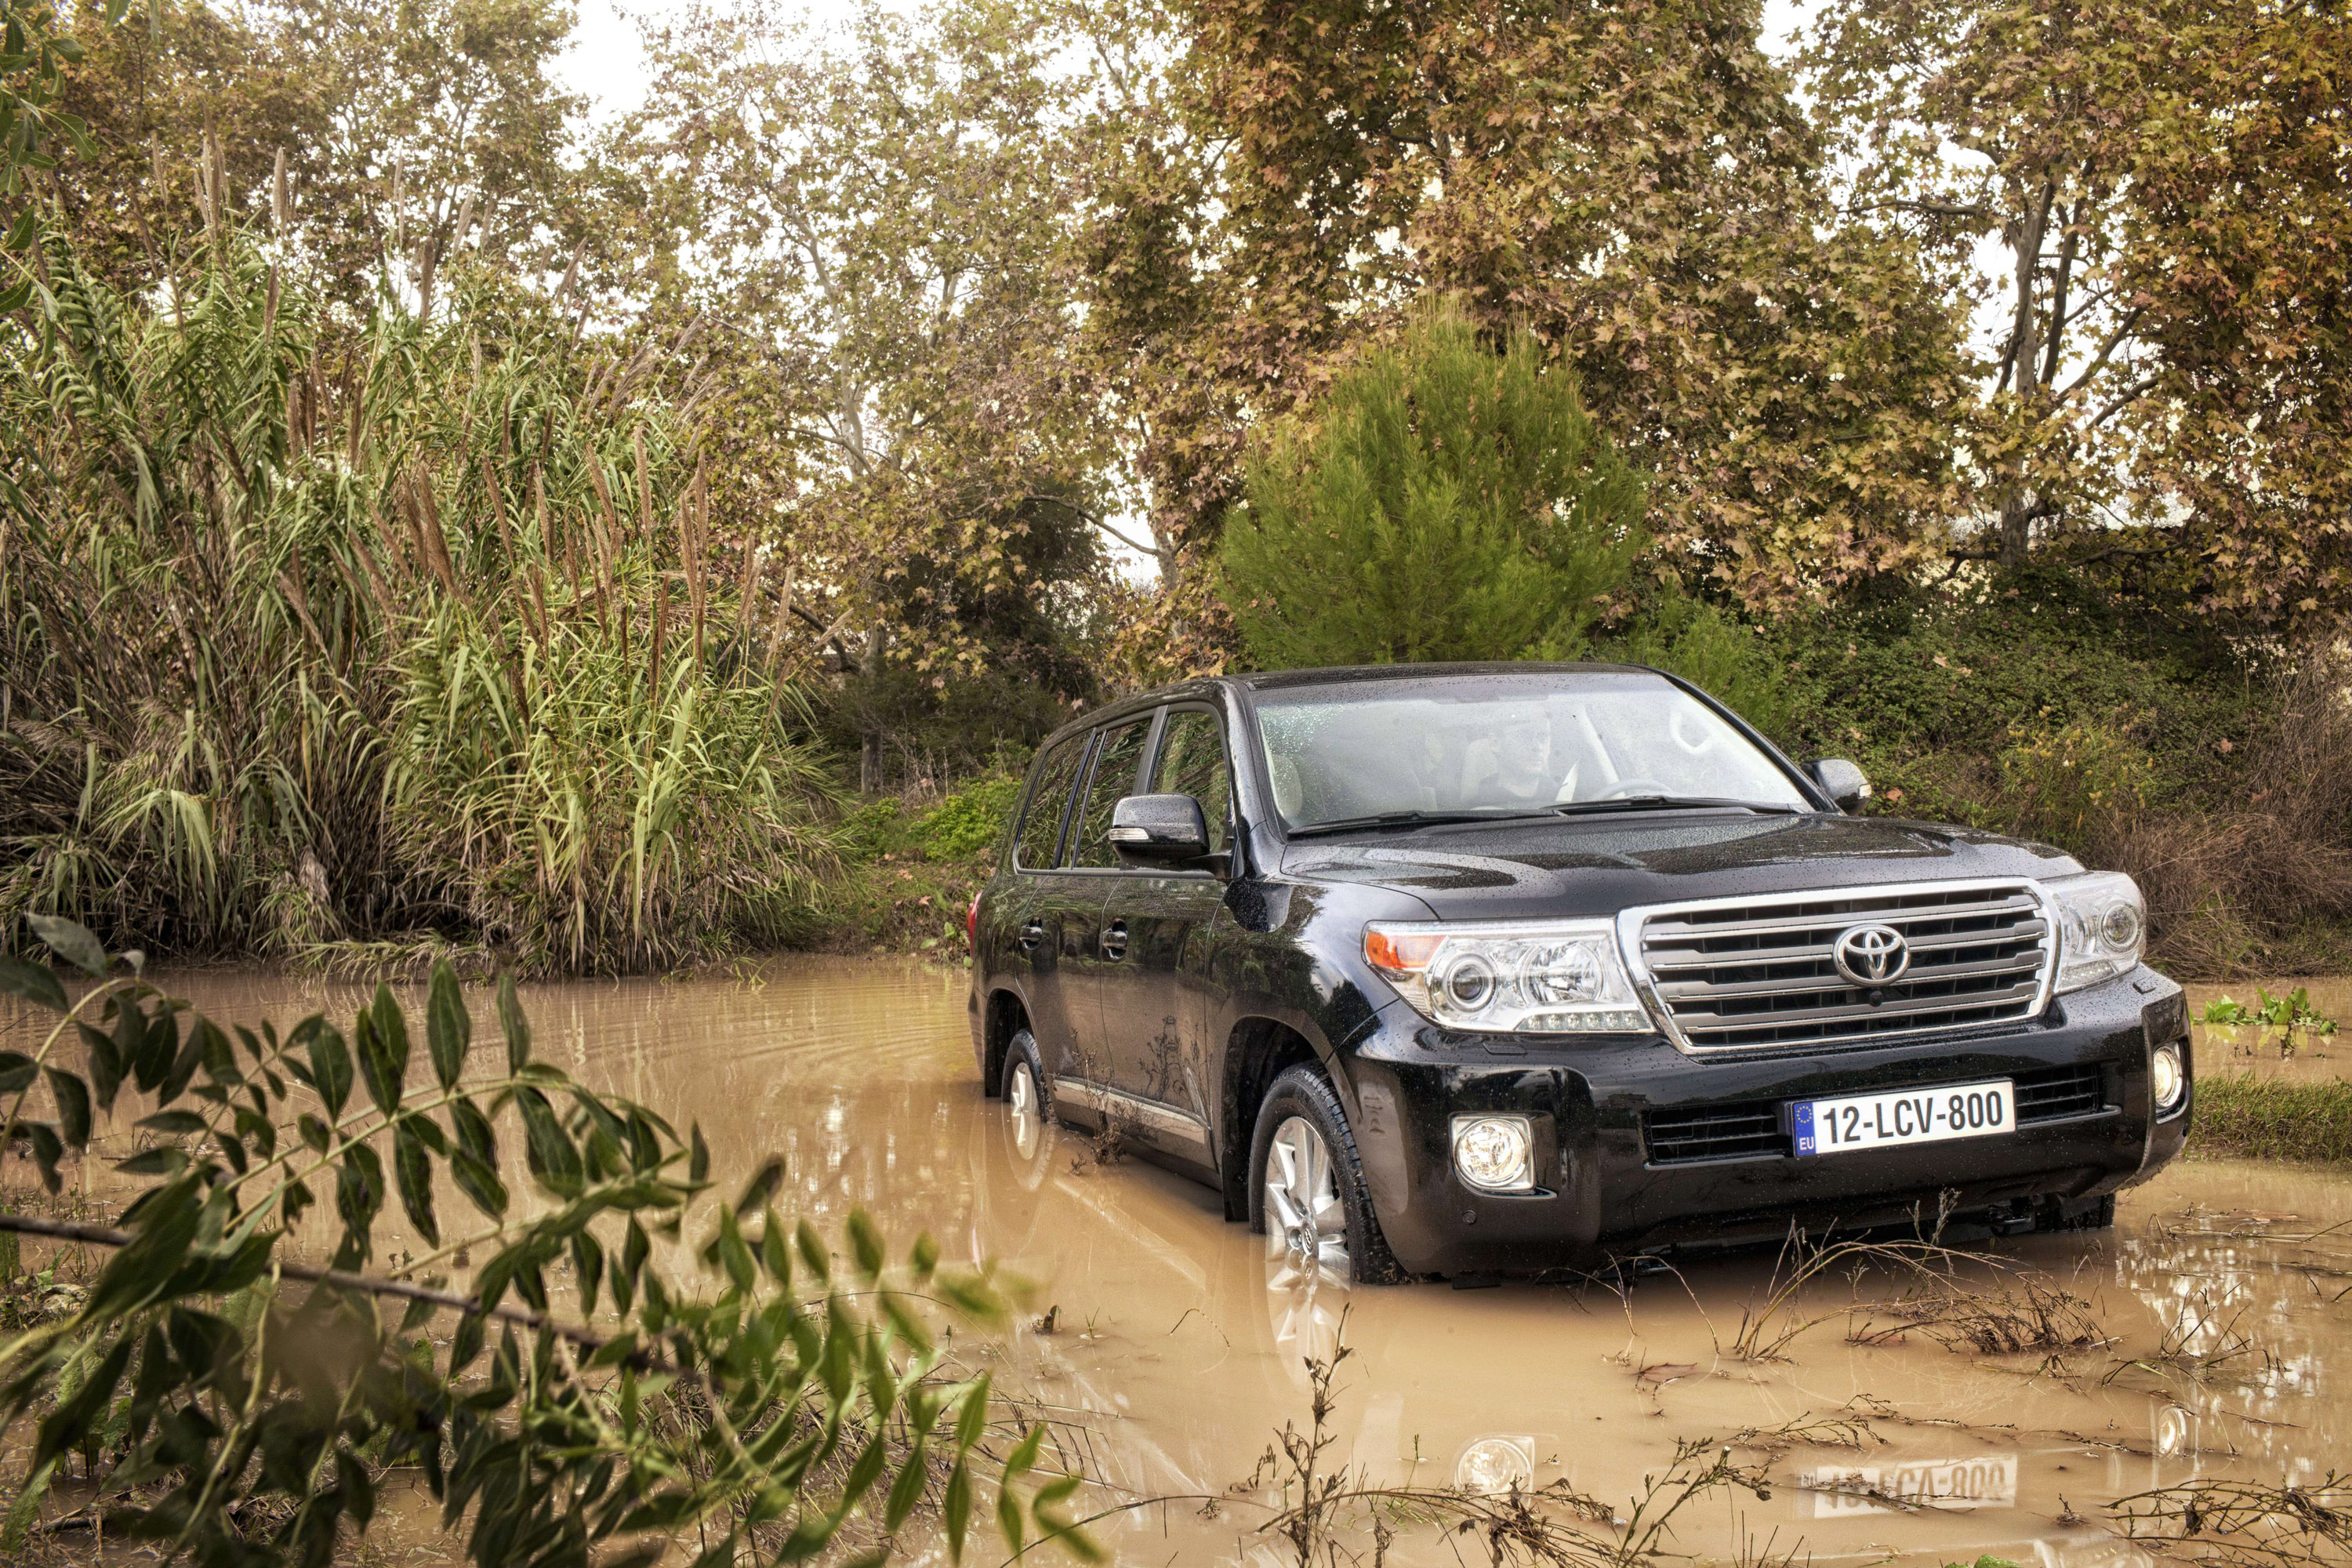 2012 Toyota Land Cruiser V8 - Picture 63385